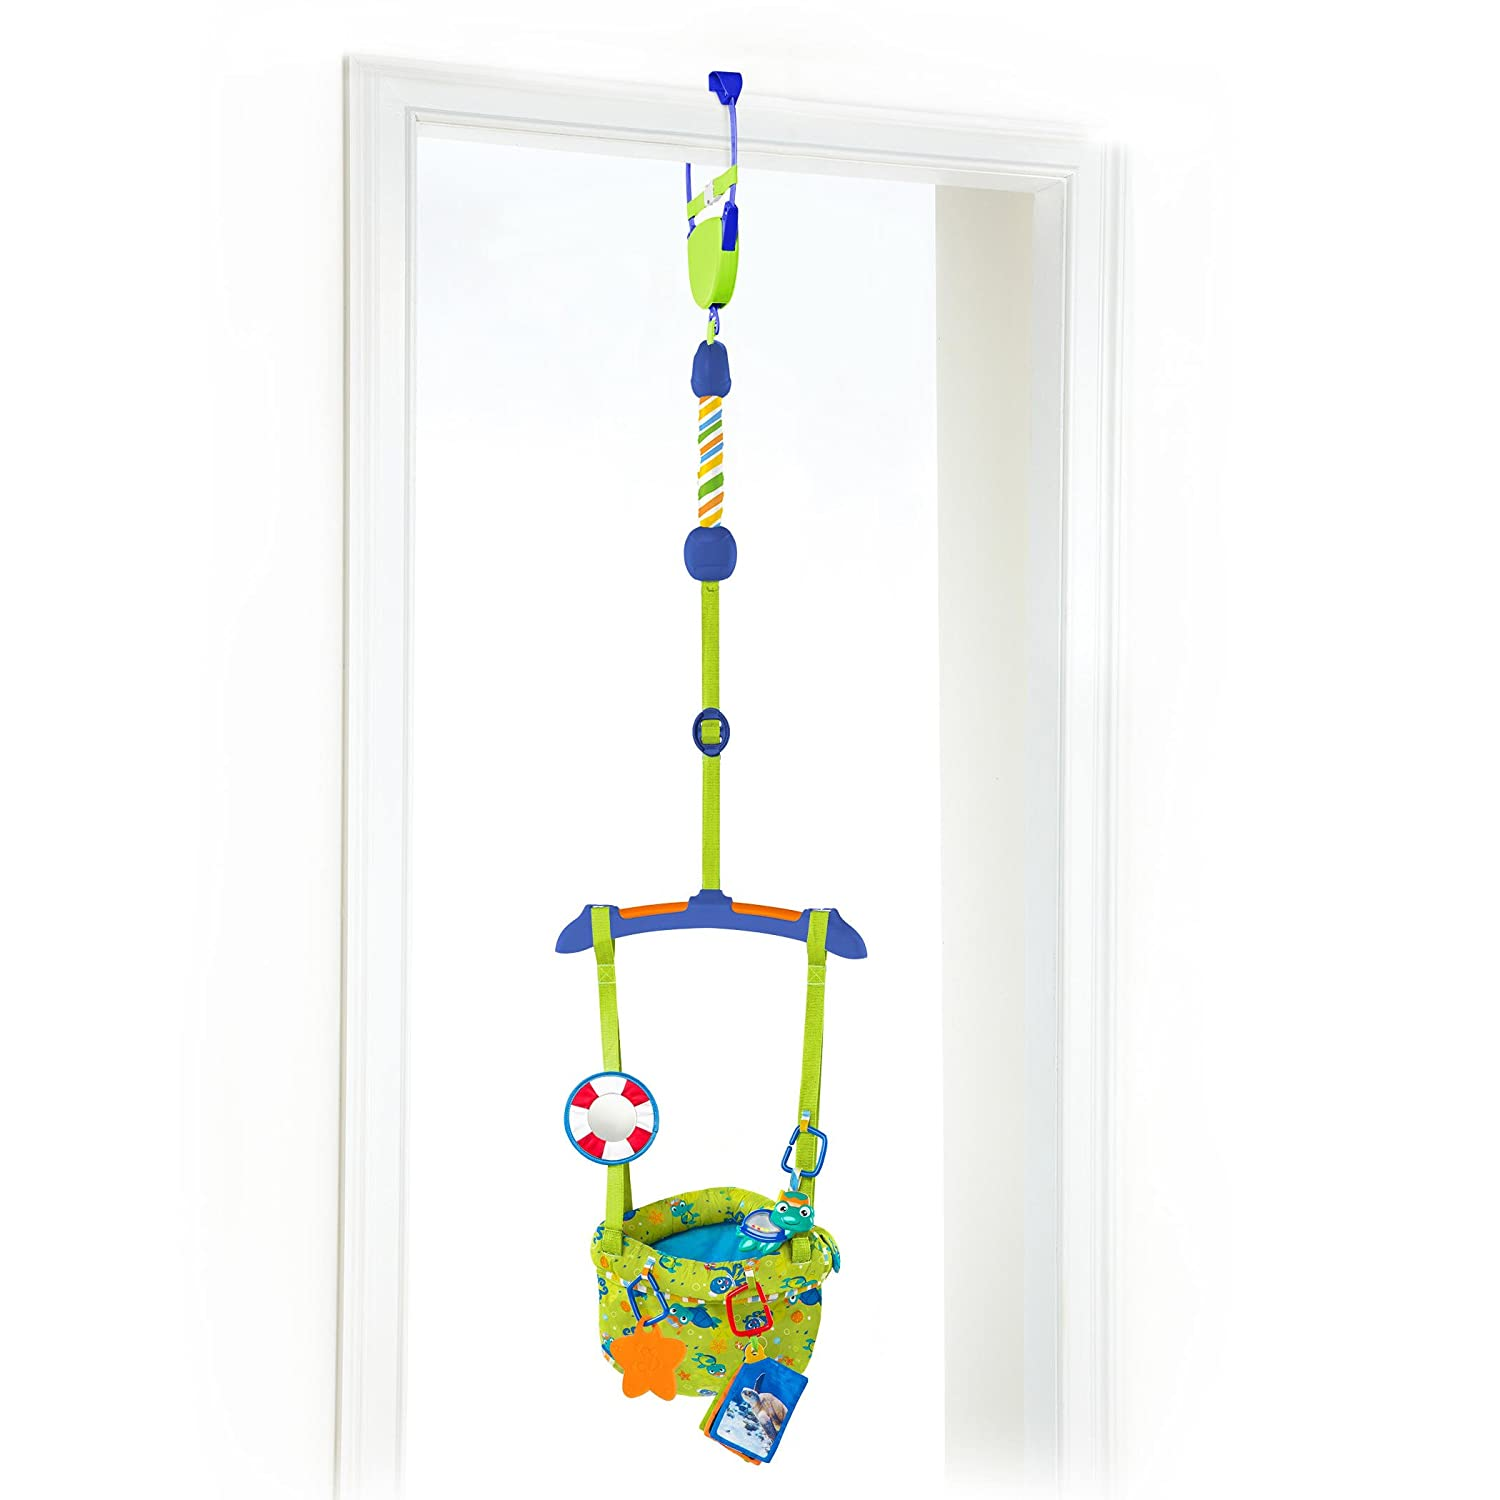 Baby Einstein Sea and Discover Door Jumper, Green/Blue/White KidsII 10235